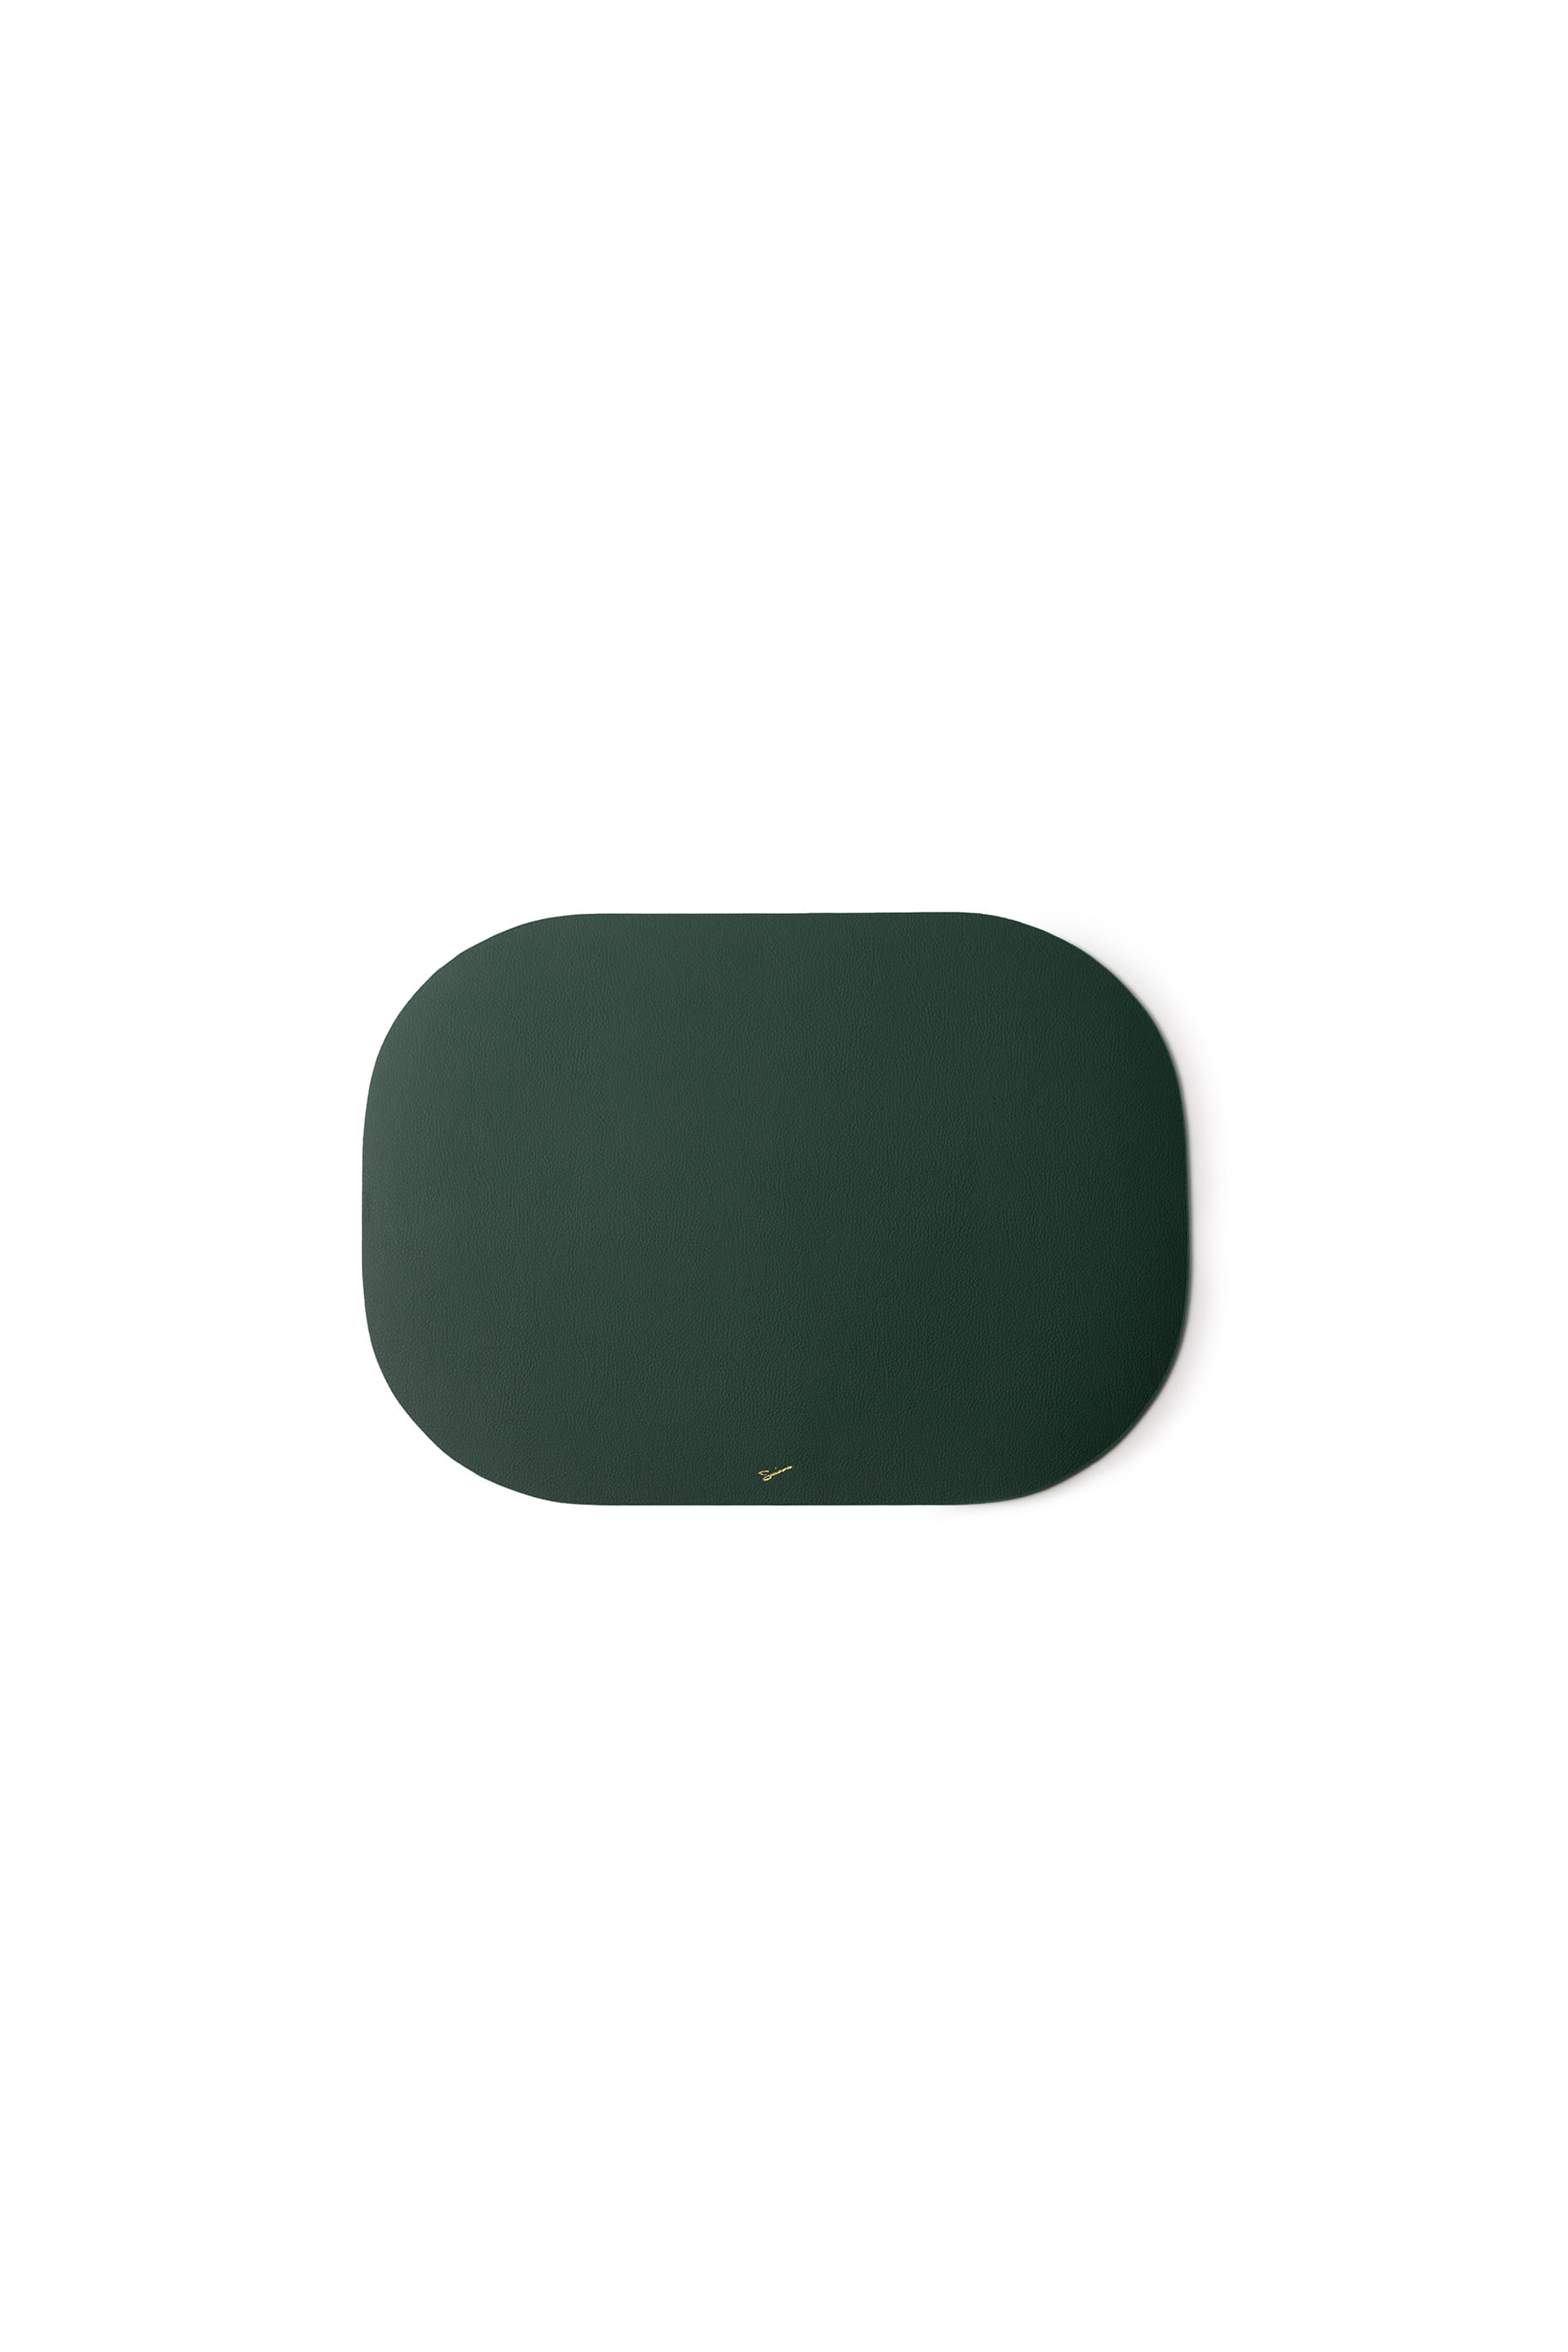 TABLE MAT 12 Deep Green